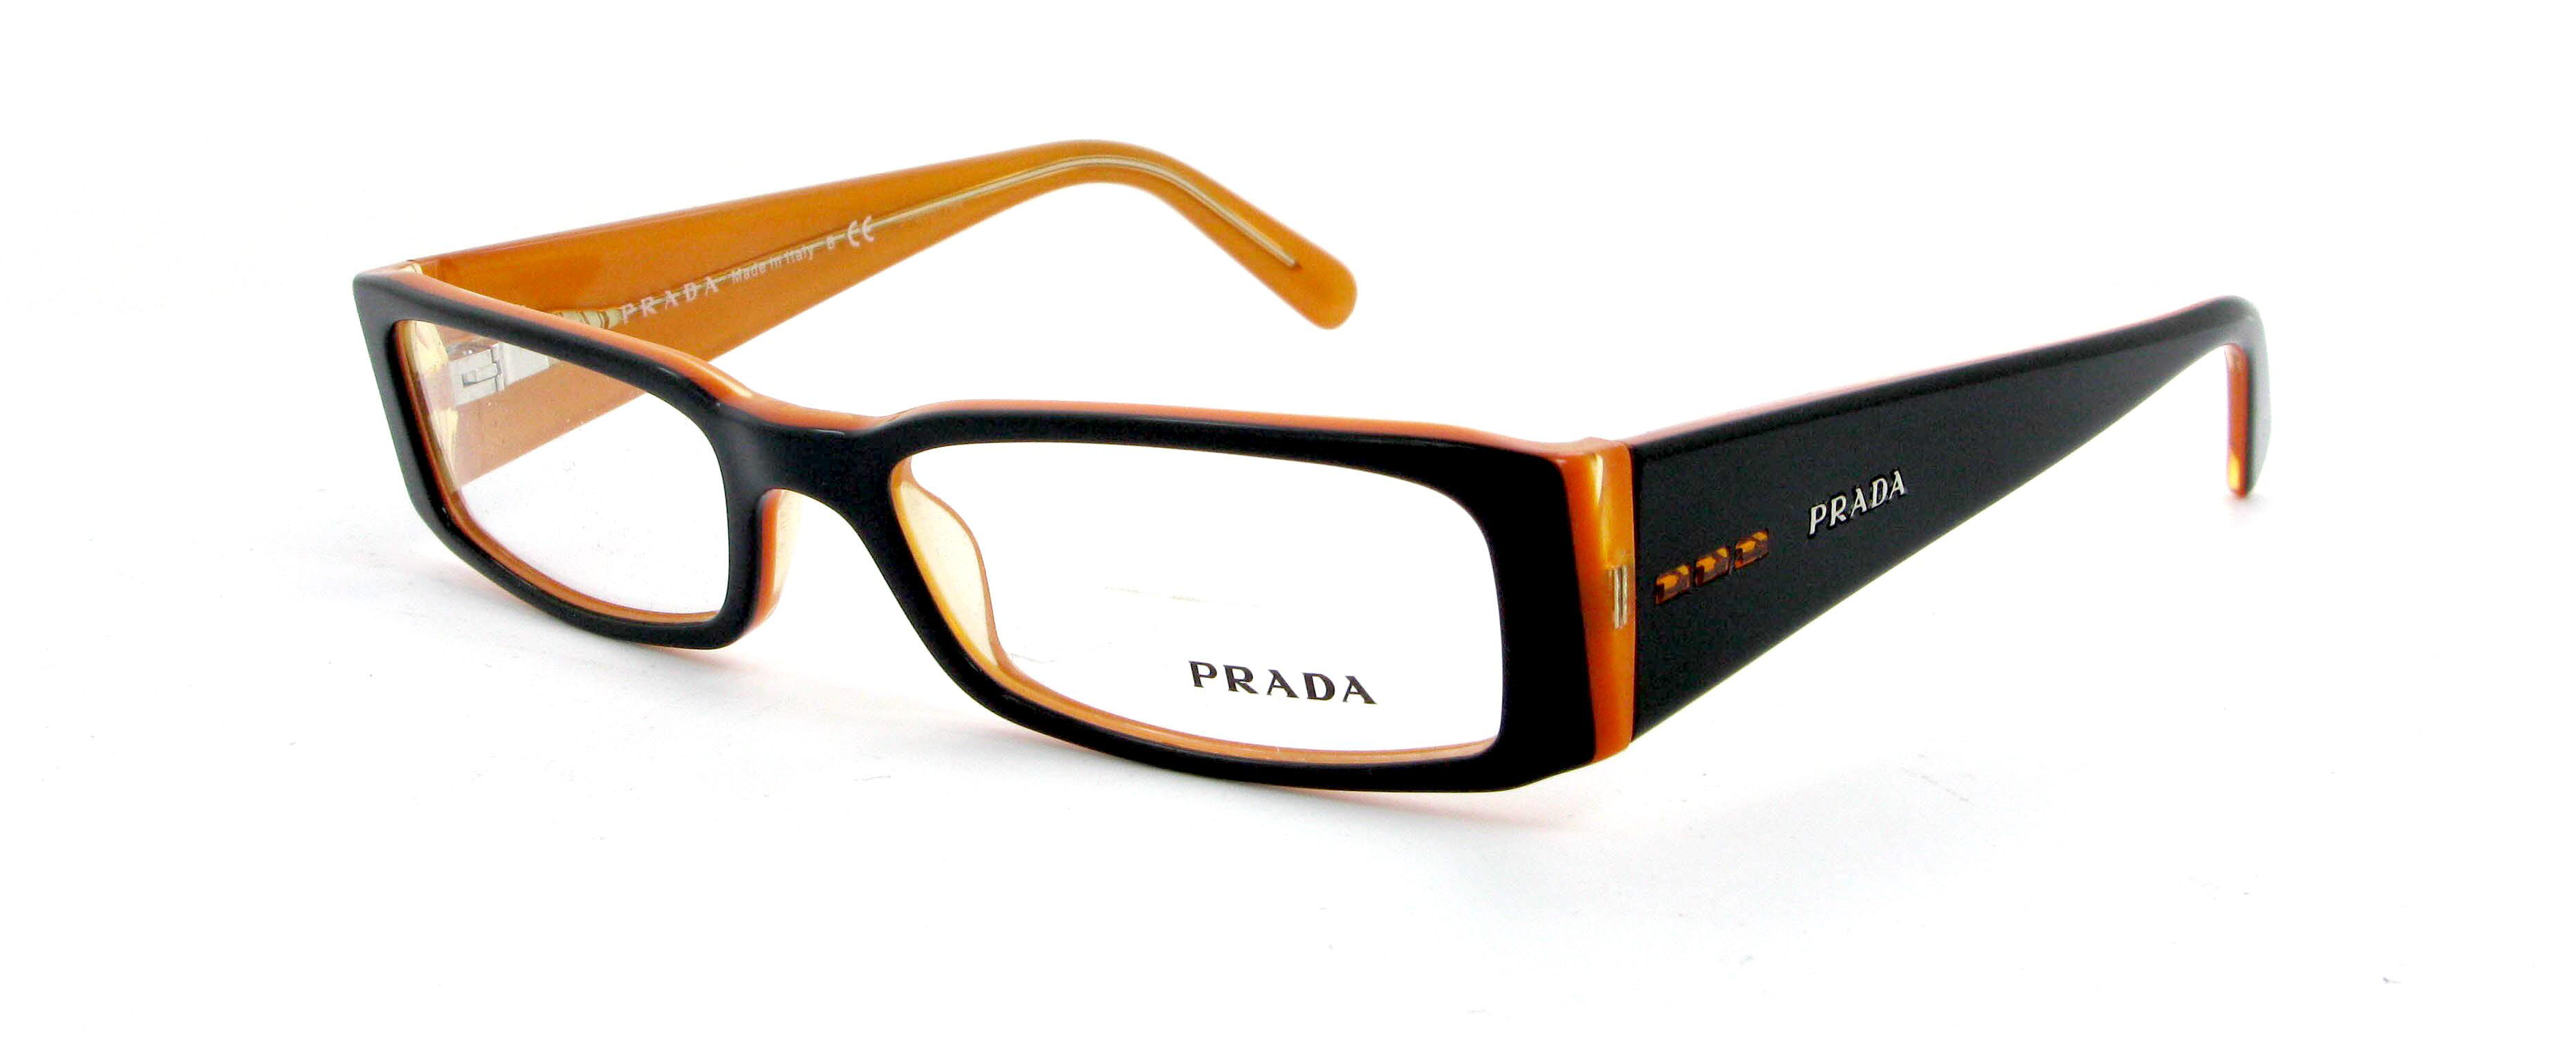 c3ddc487a49 Lunette De Vue Prada Optic 2000